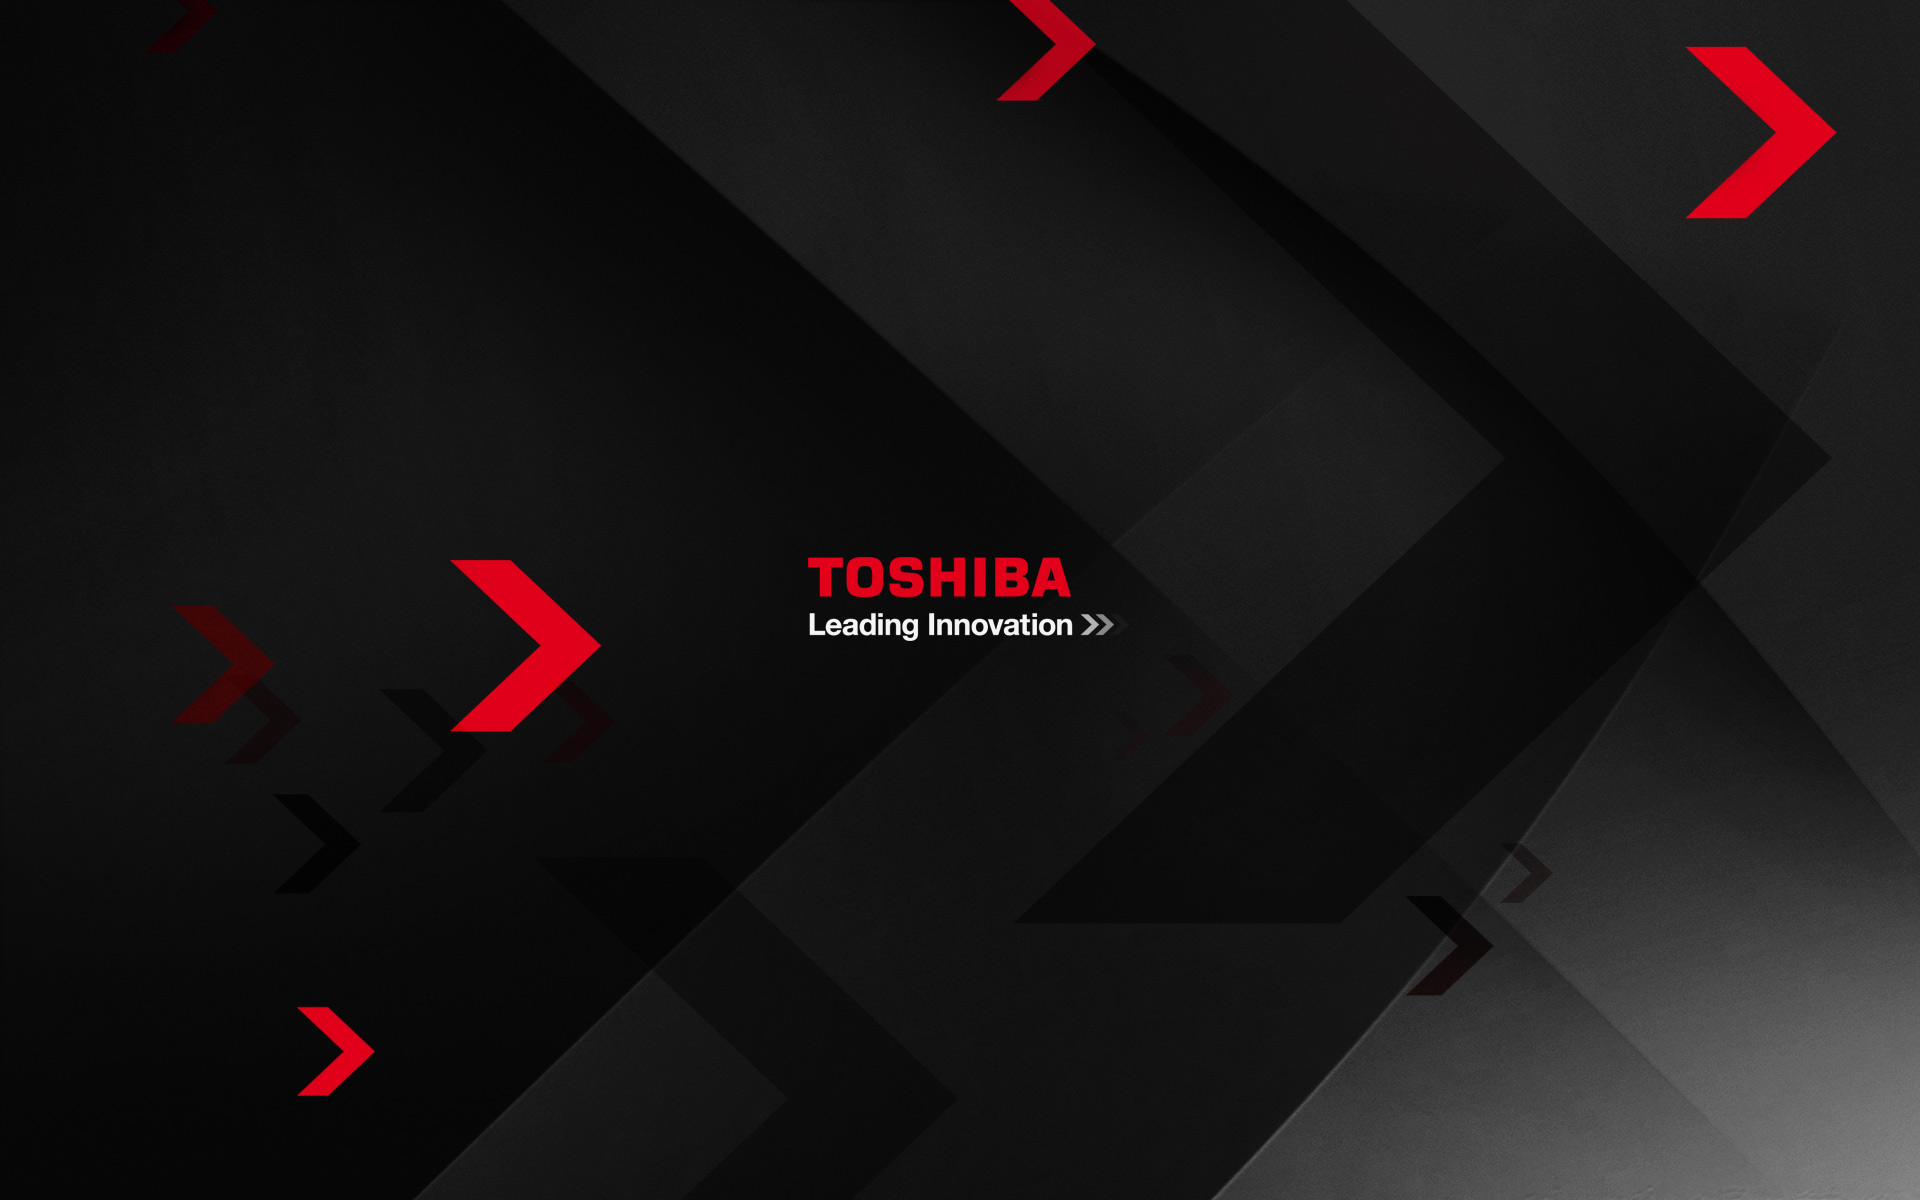 Toshiba Wallpapers PC Doctor Ardee 1920x1200